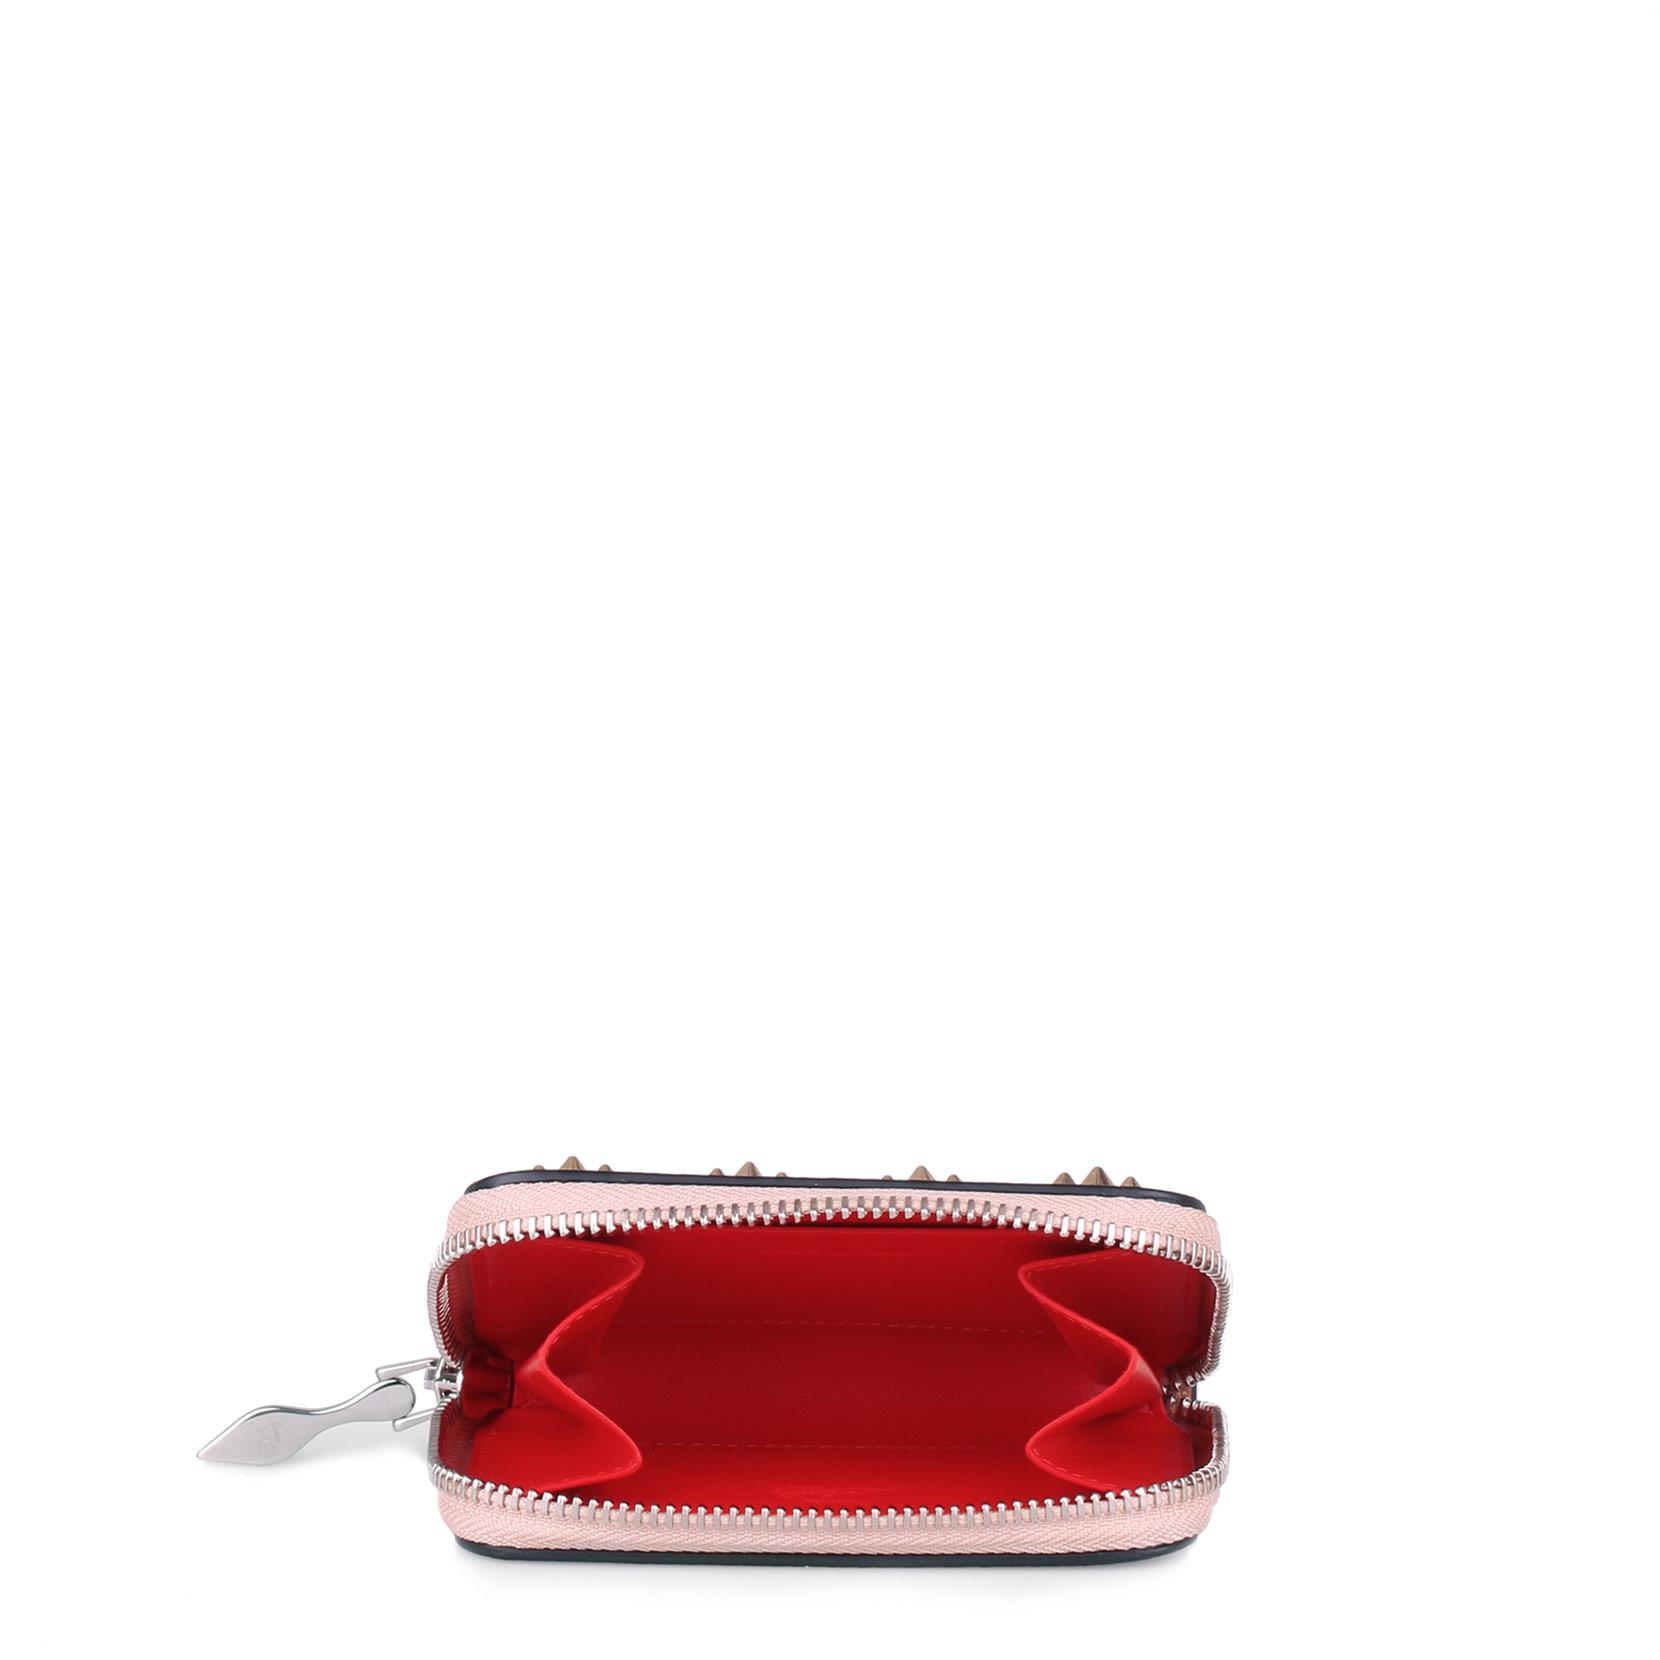 Panettone nude multi-spikes coin purse Christian Louboutin